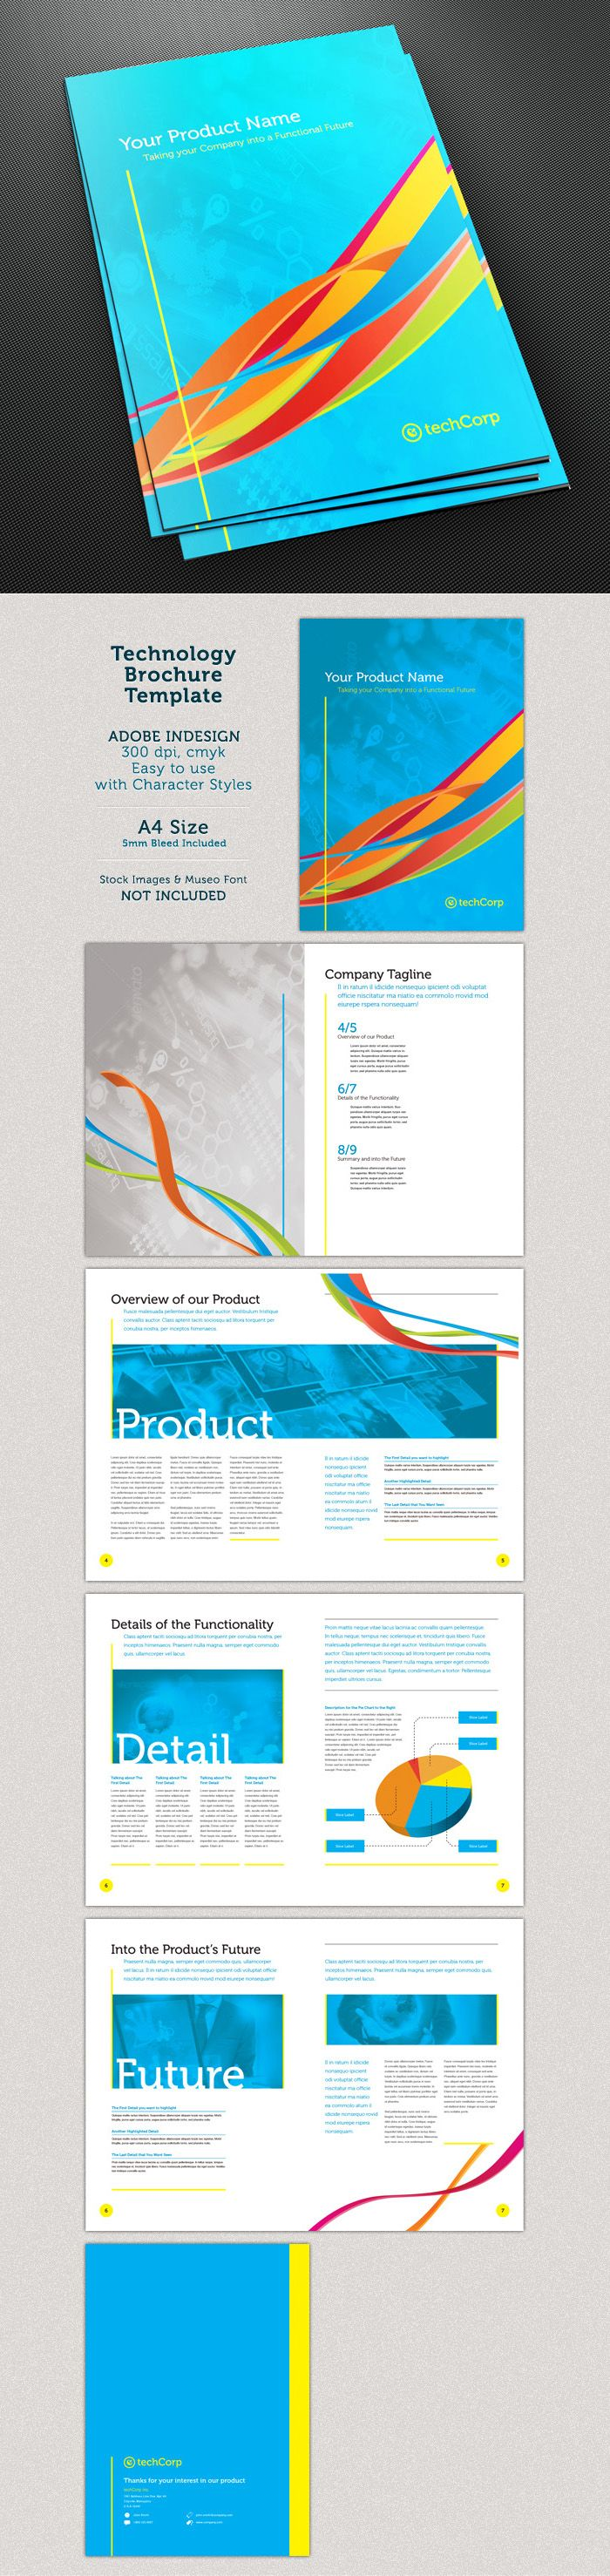 Best Publication Images On   Brochure Template